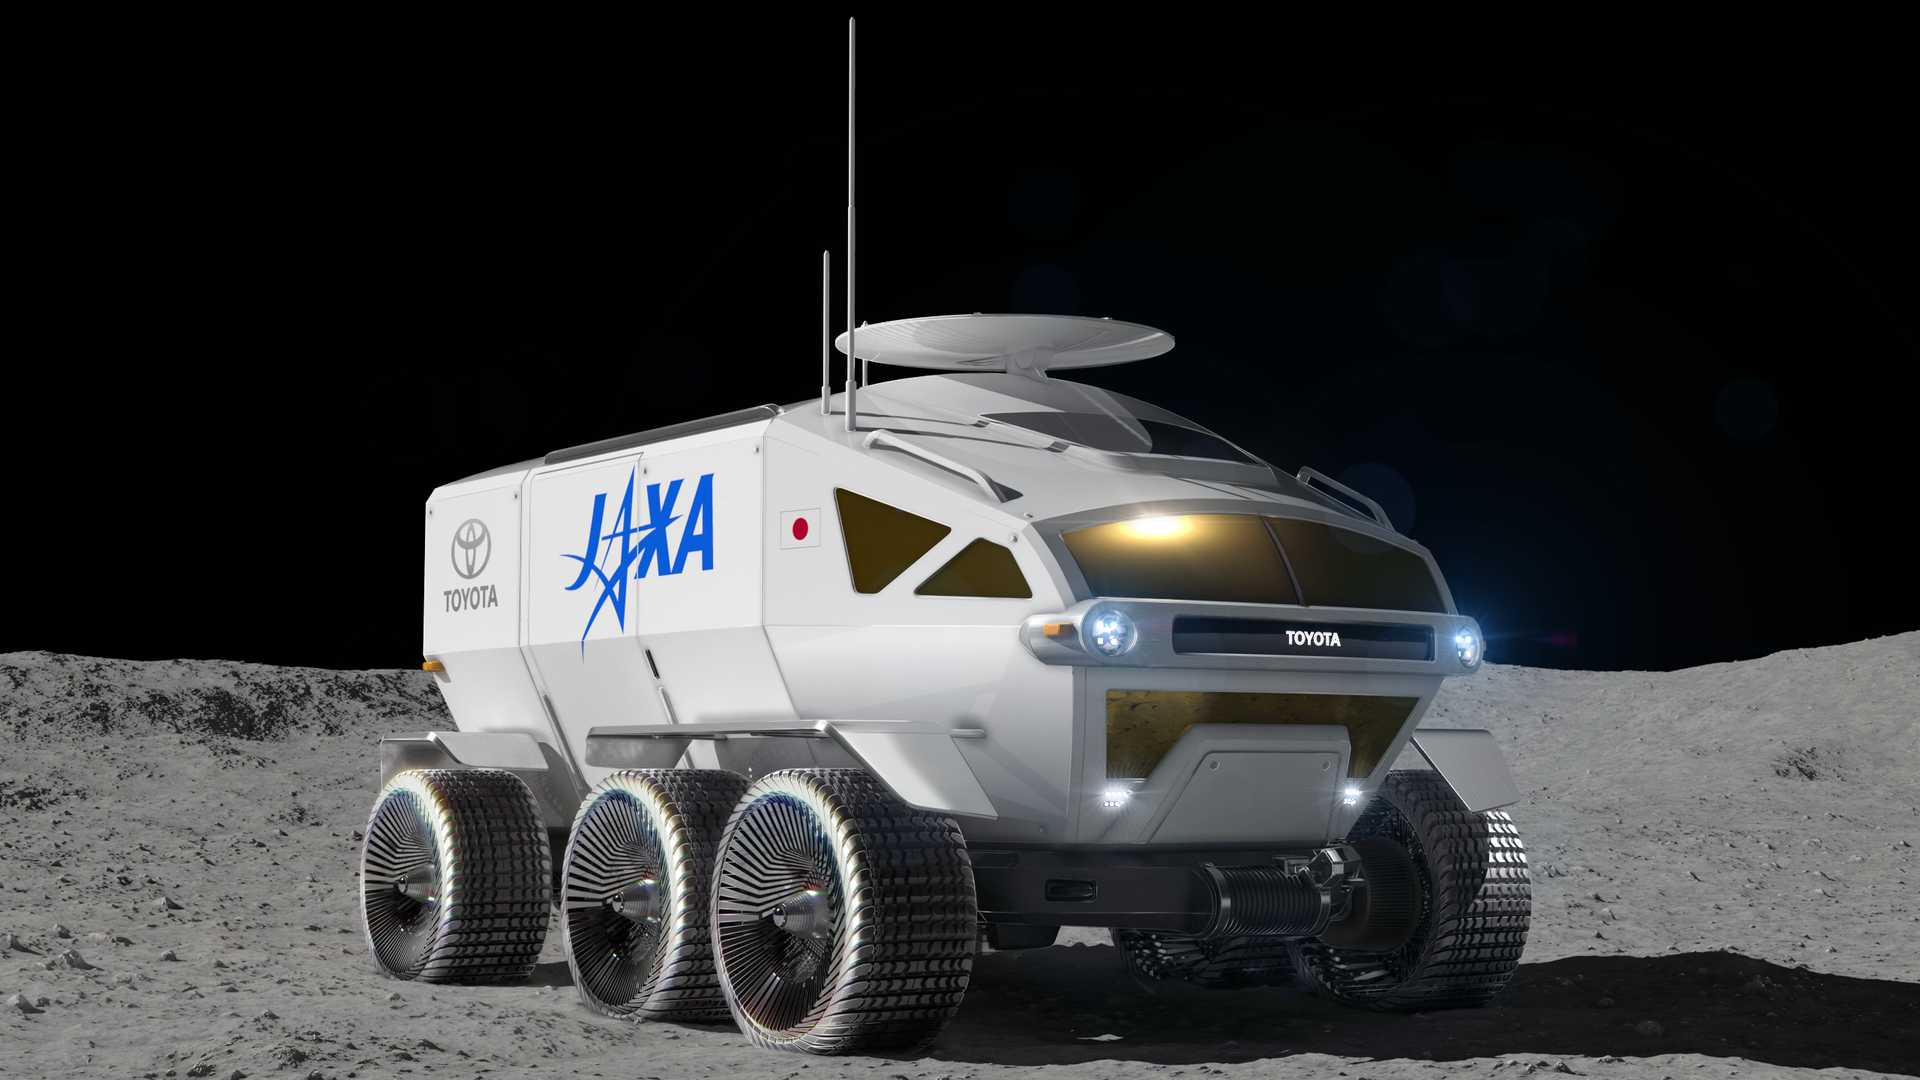 Toyota will develop a manned fuel-cell lunar rover